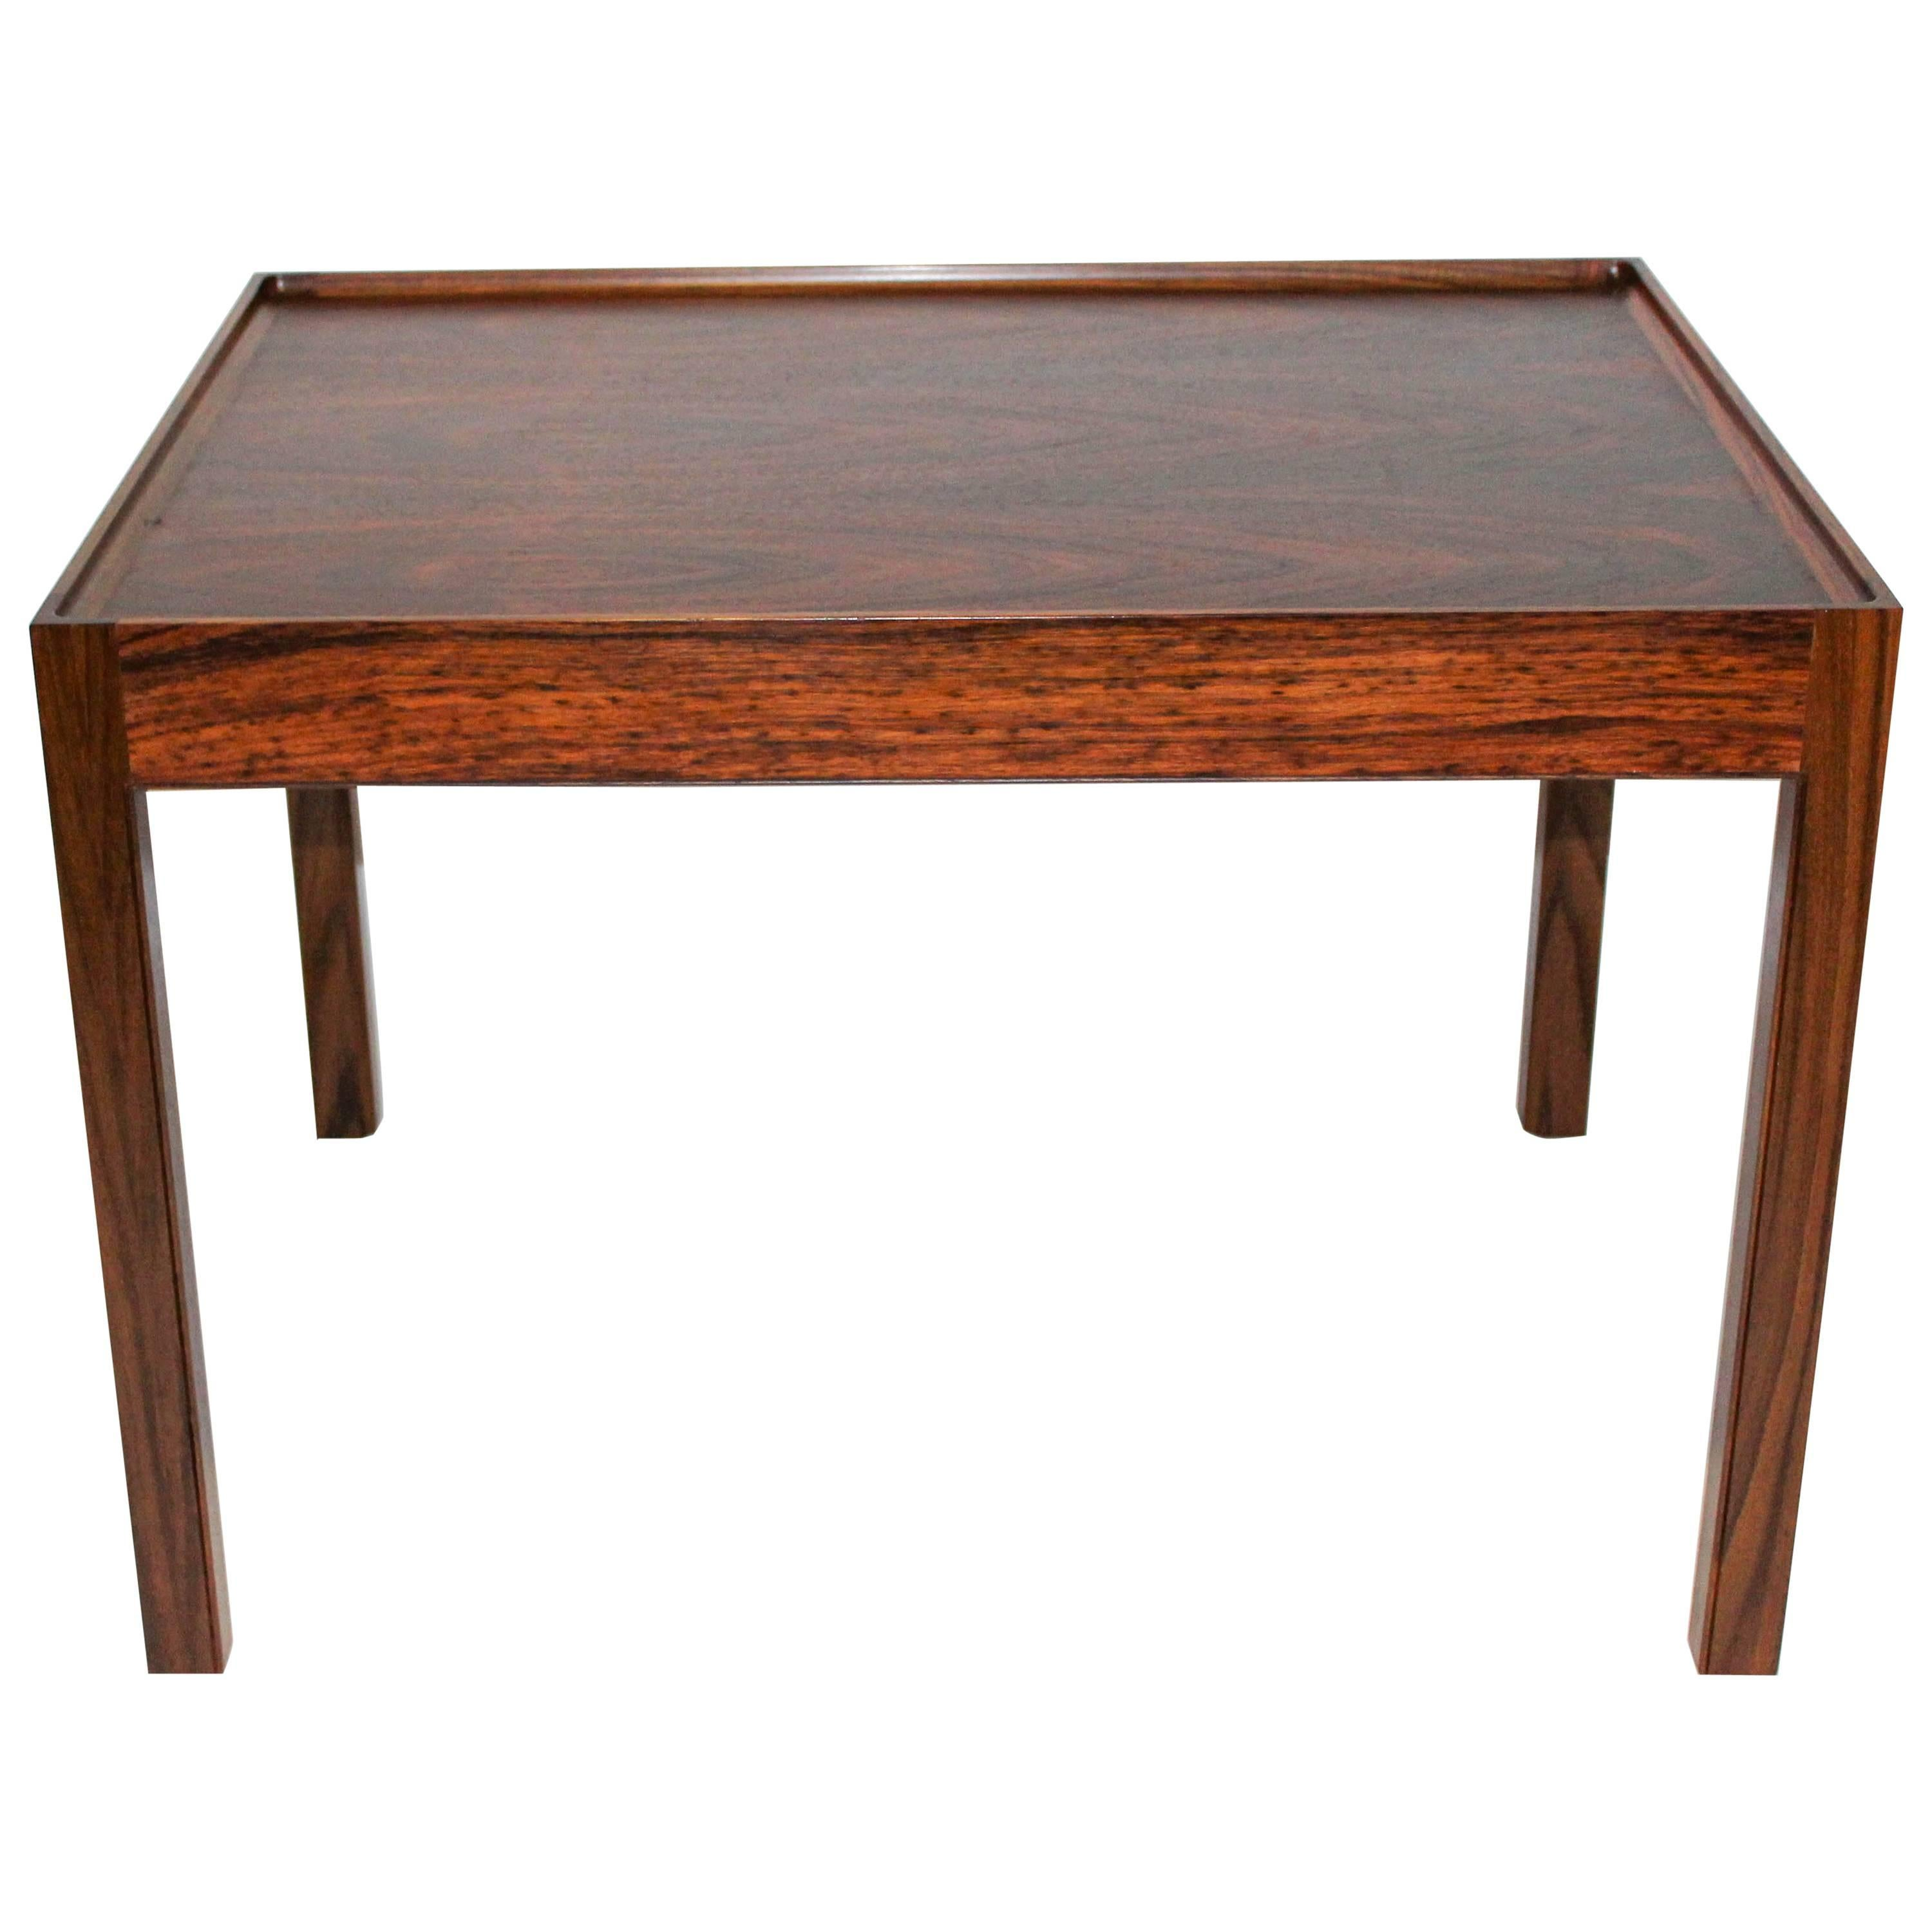 Midcentury Rosewood Coffee Table by Eric Christian Sørensen